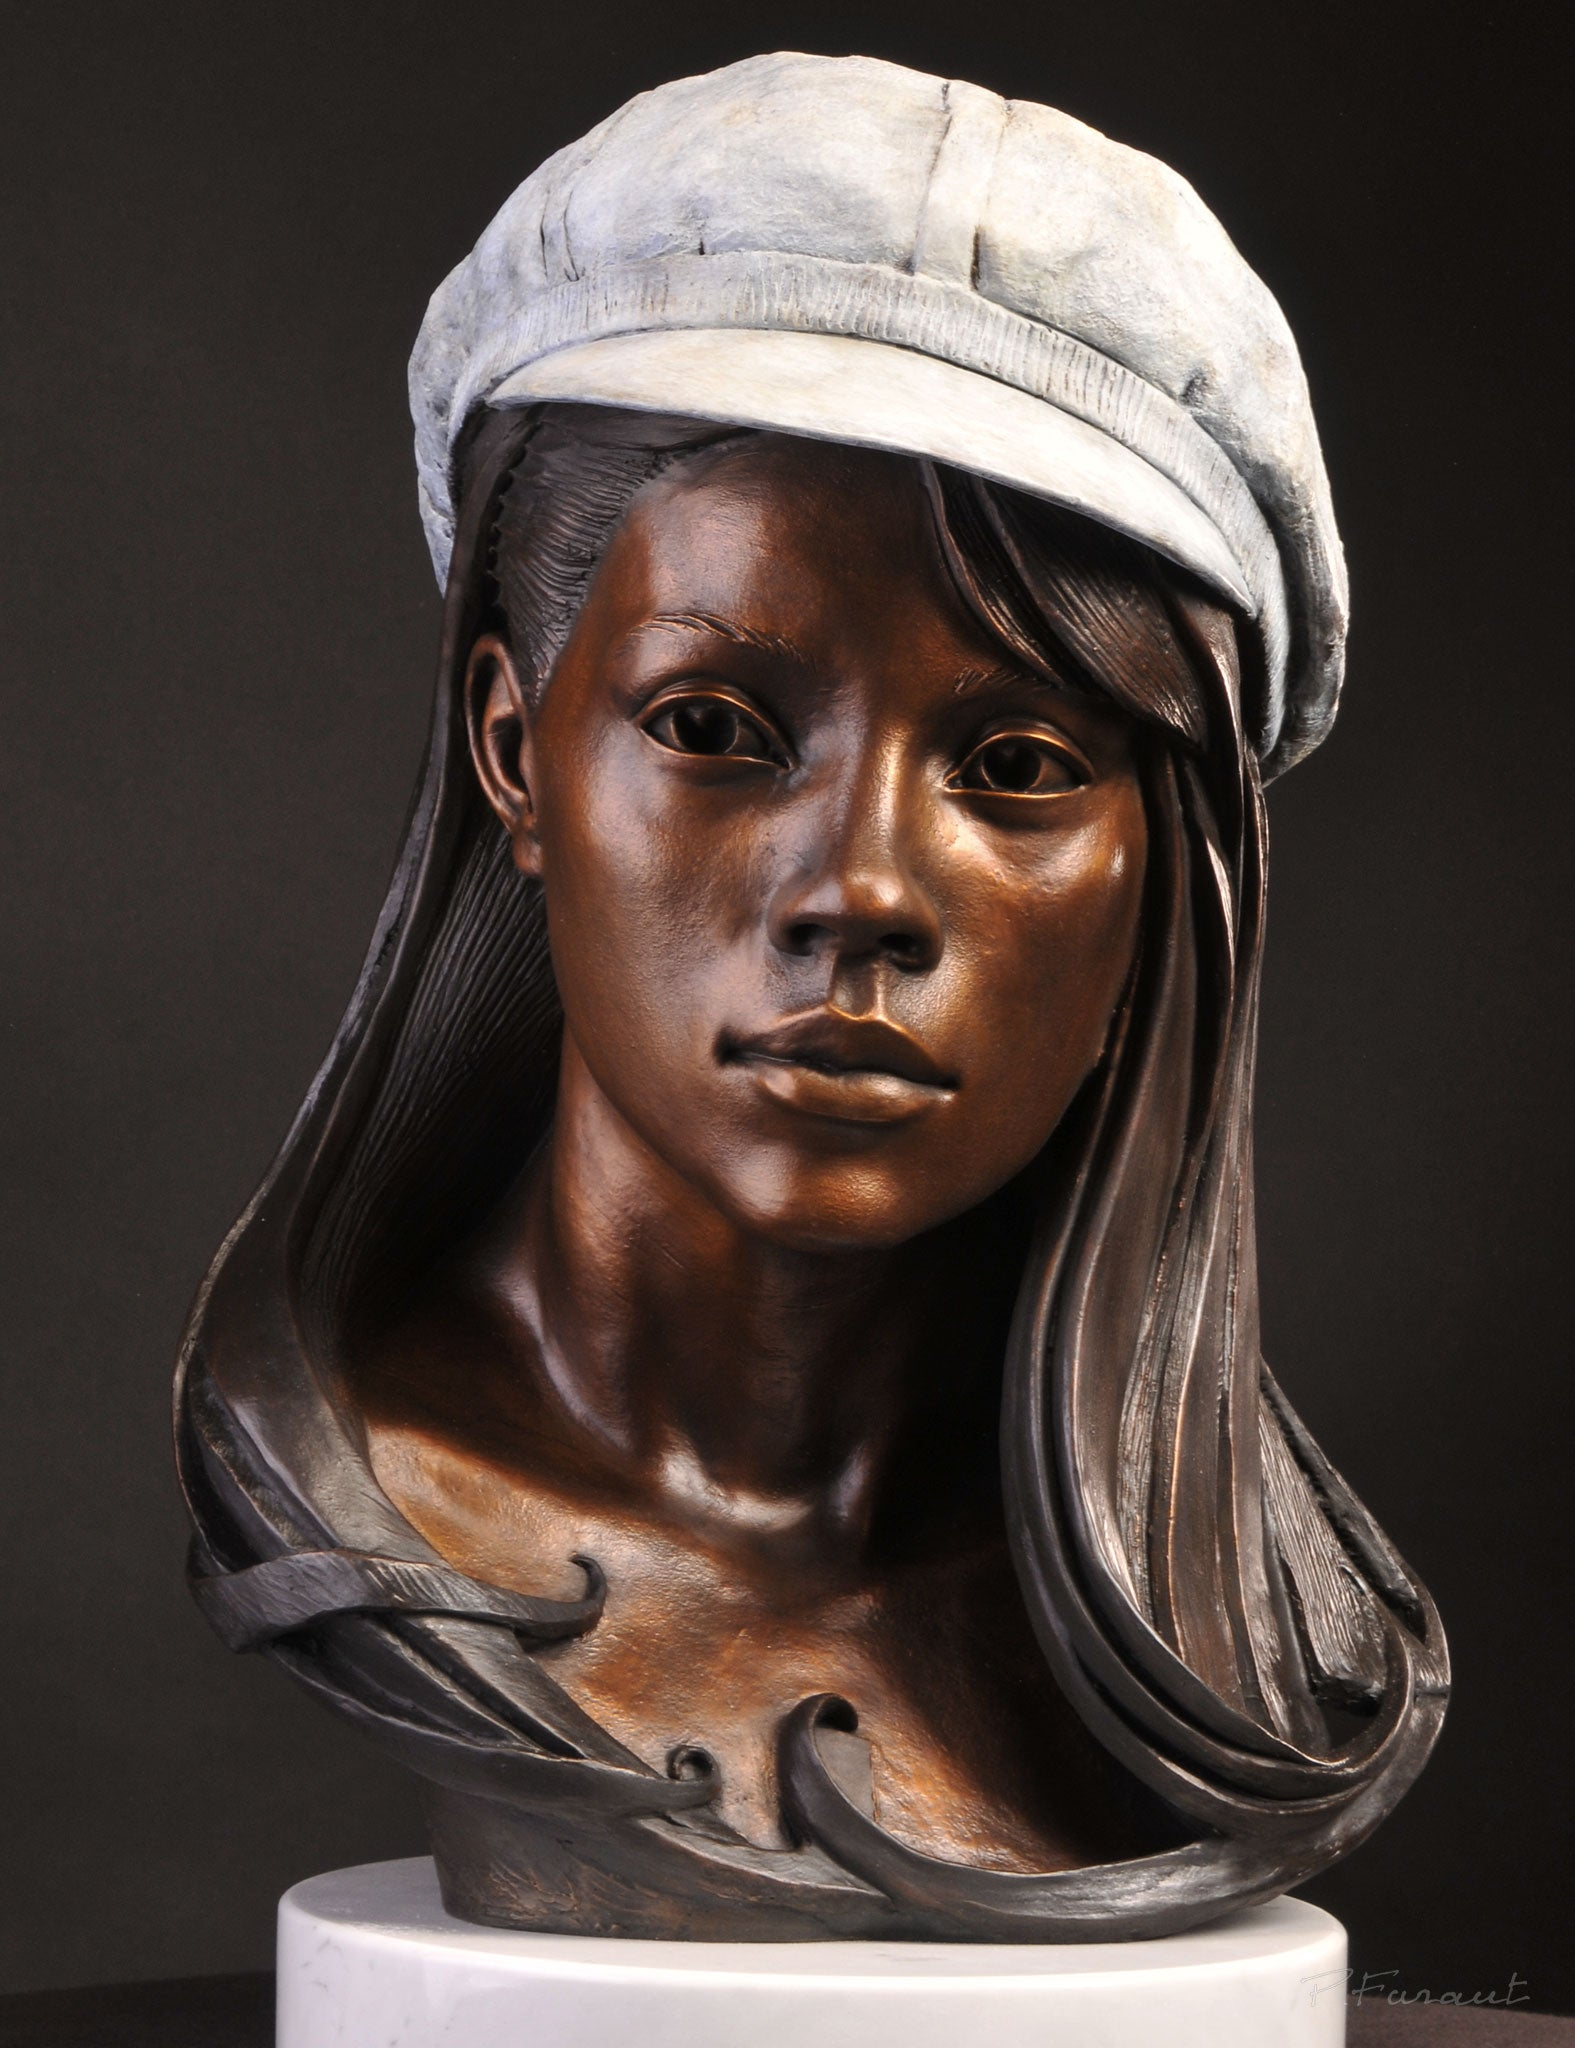 Bronze bust of asian woman with beret and abstract hair by Philippe Faraut